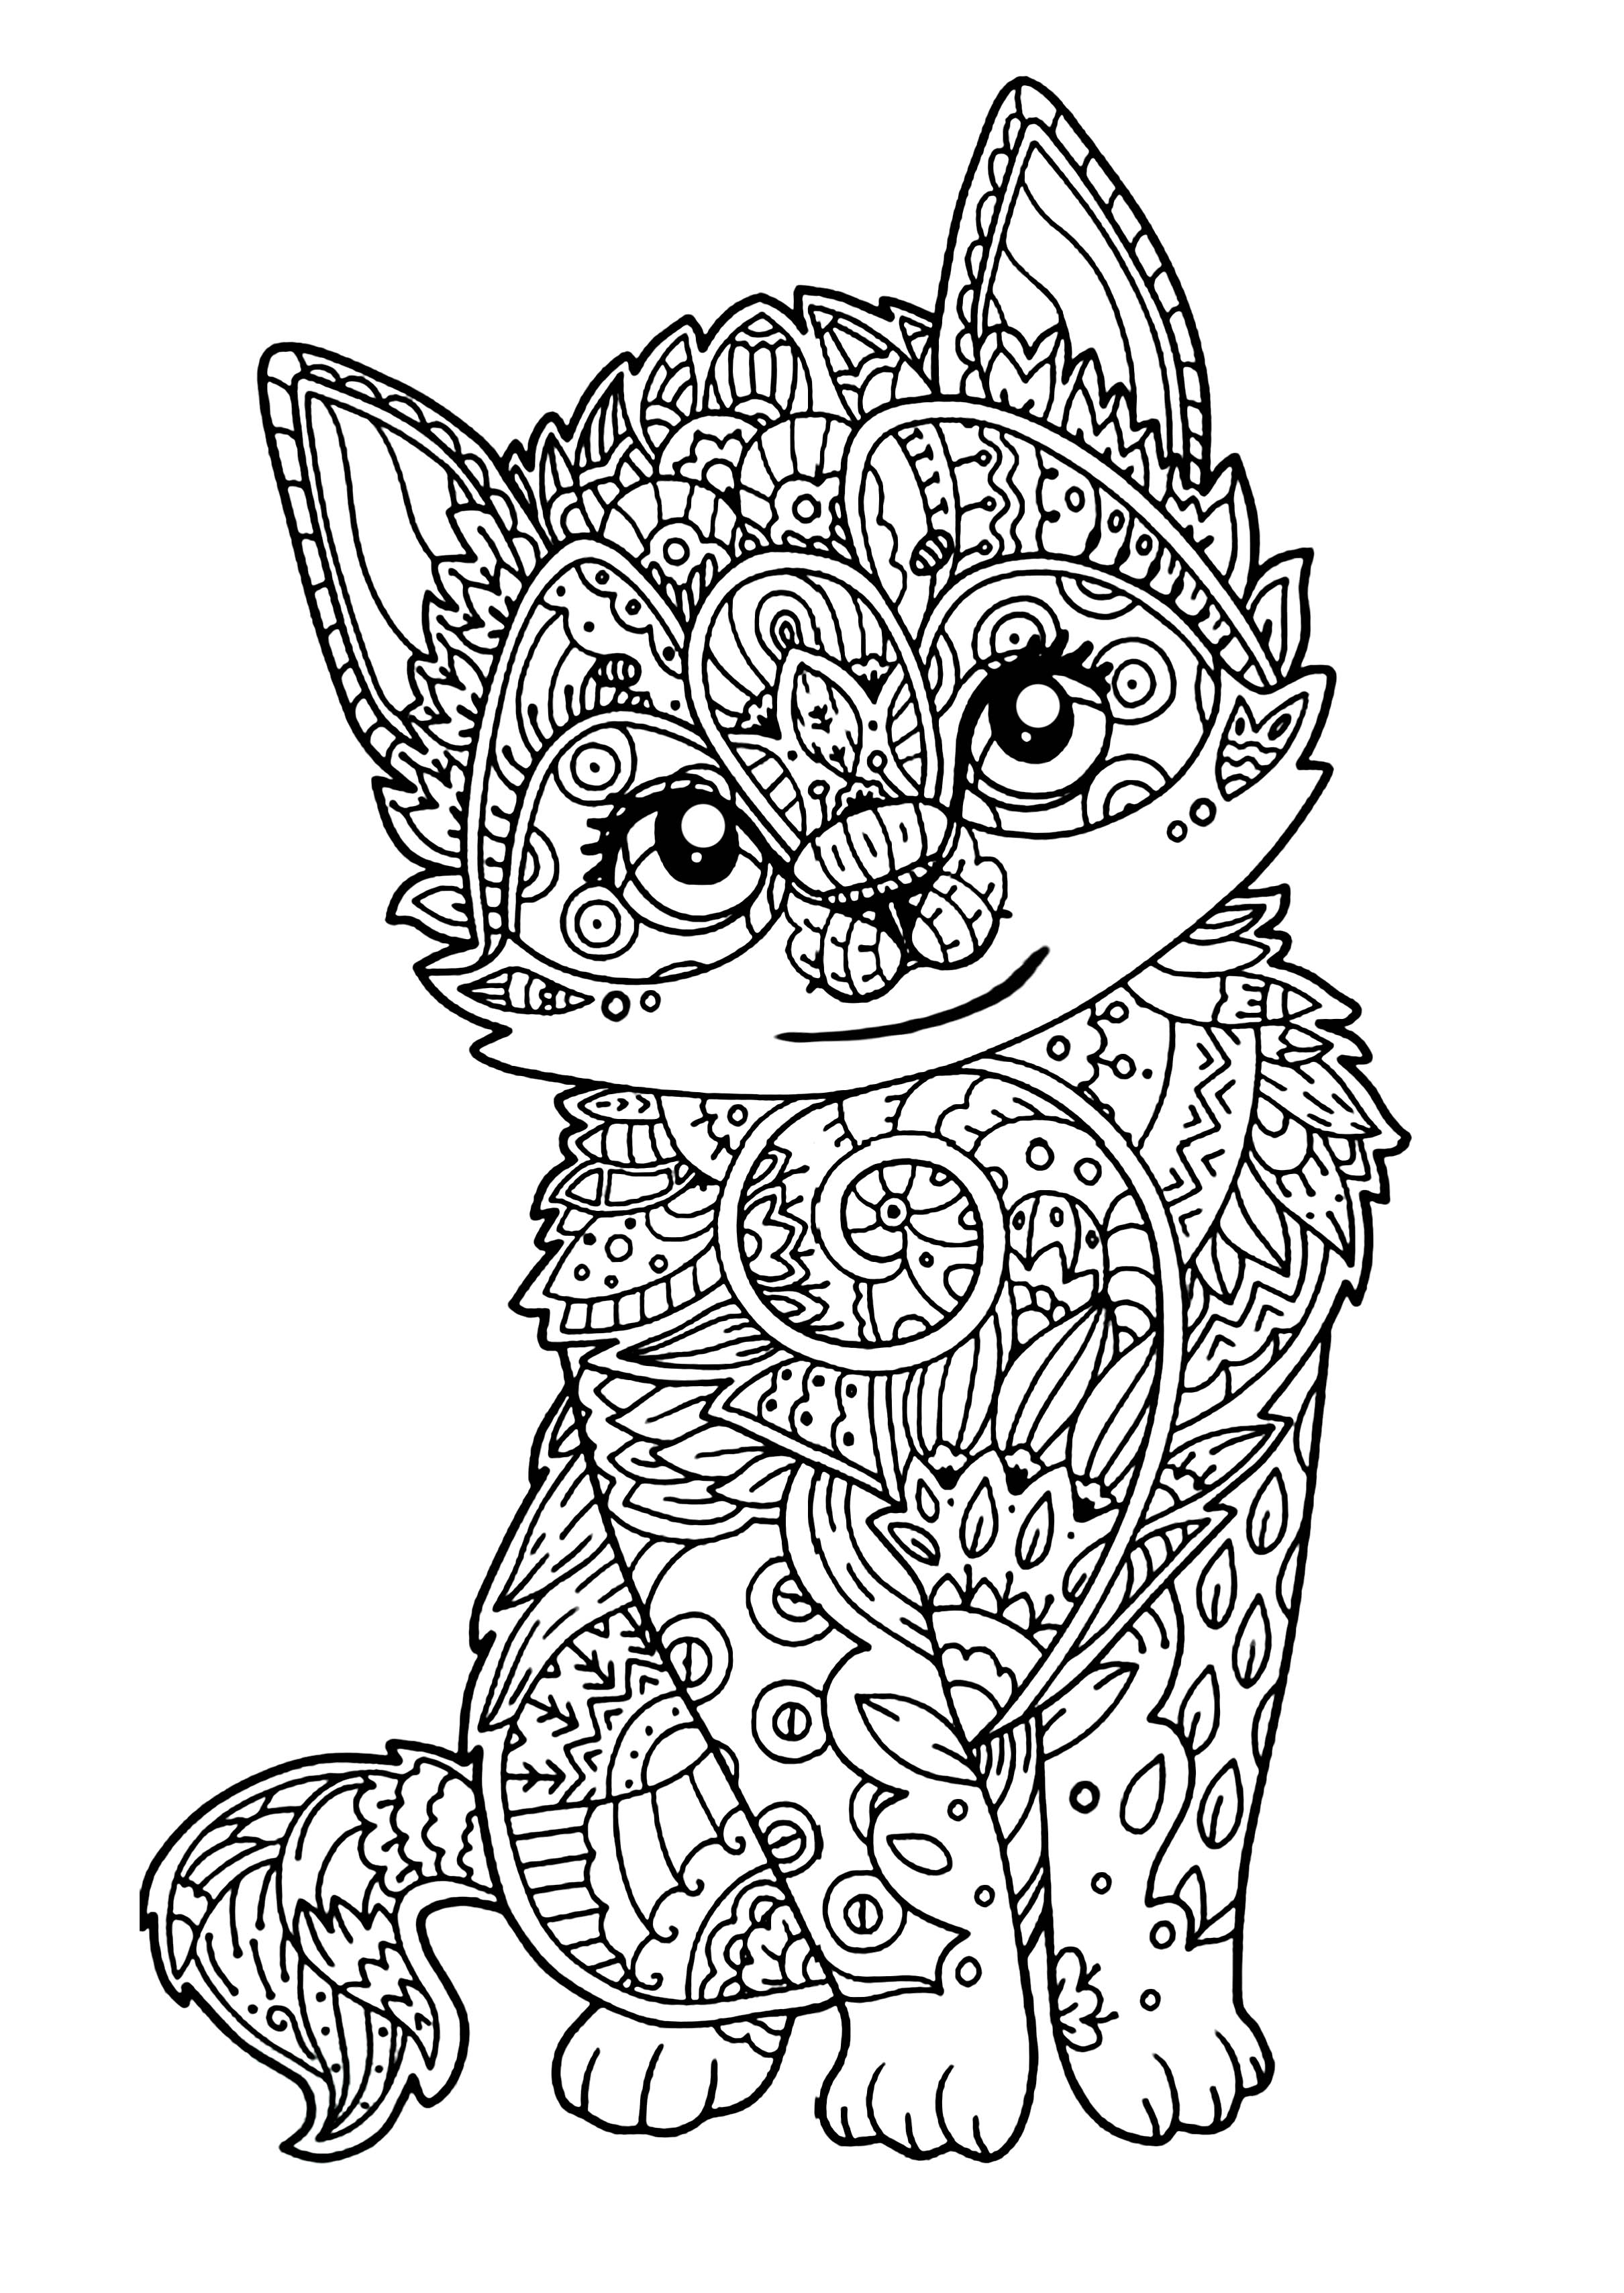 hard cat design coloring pages - photo#10